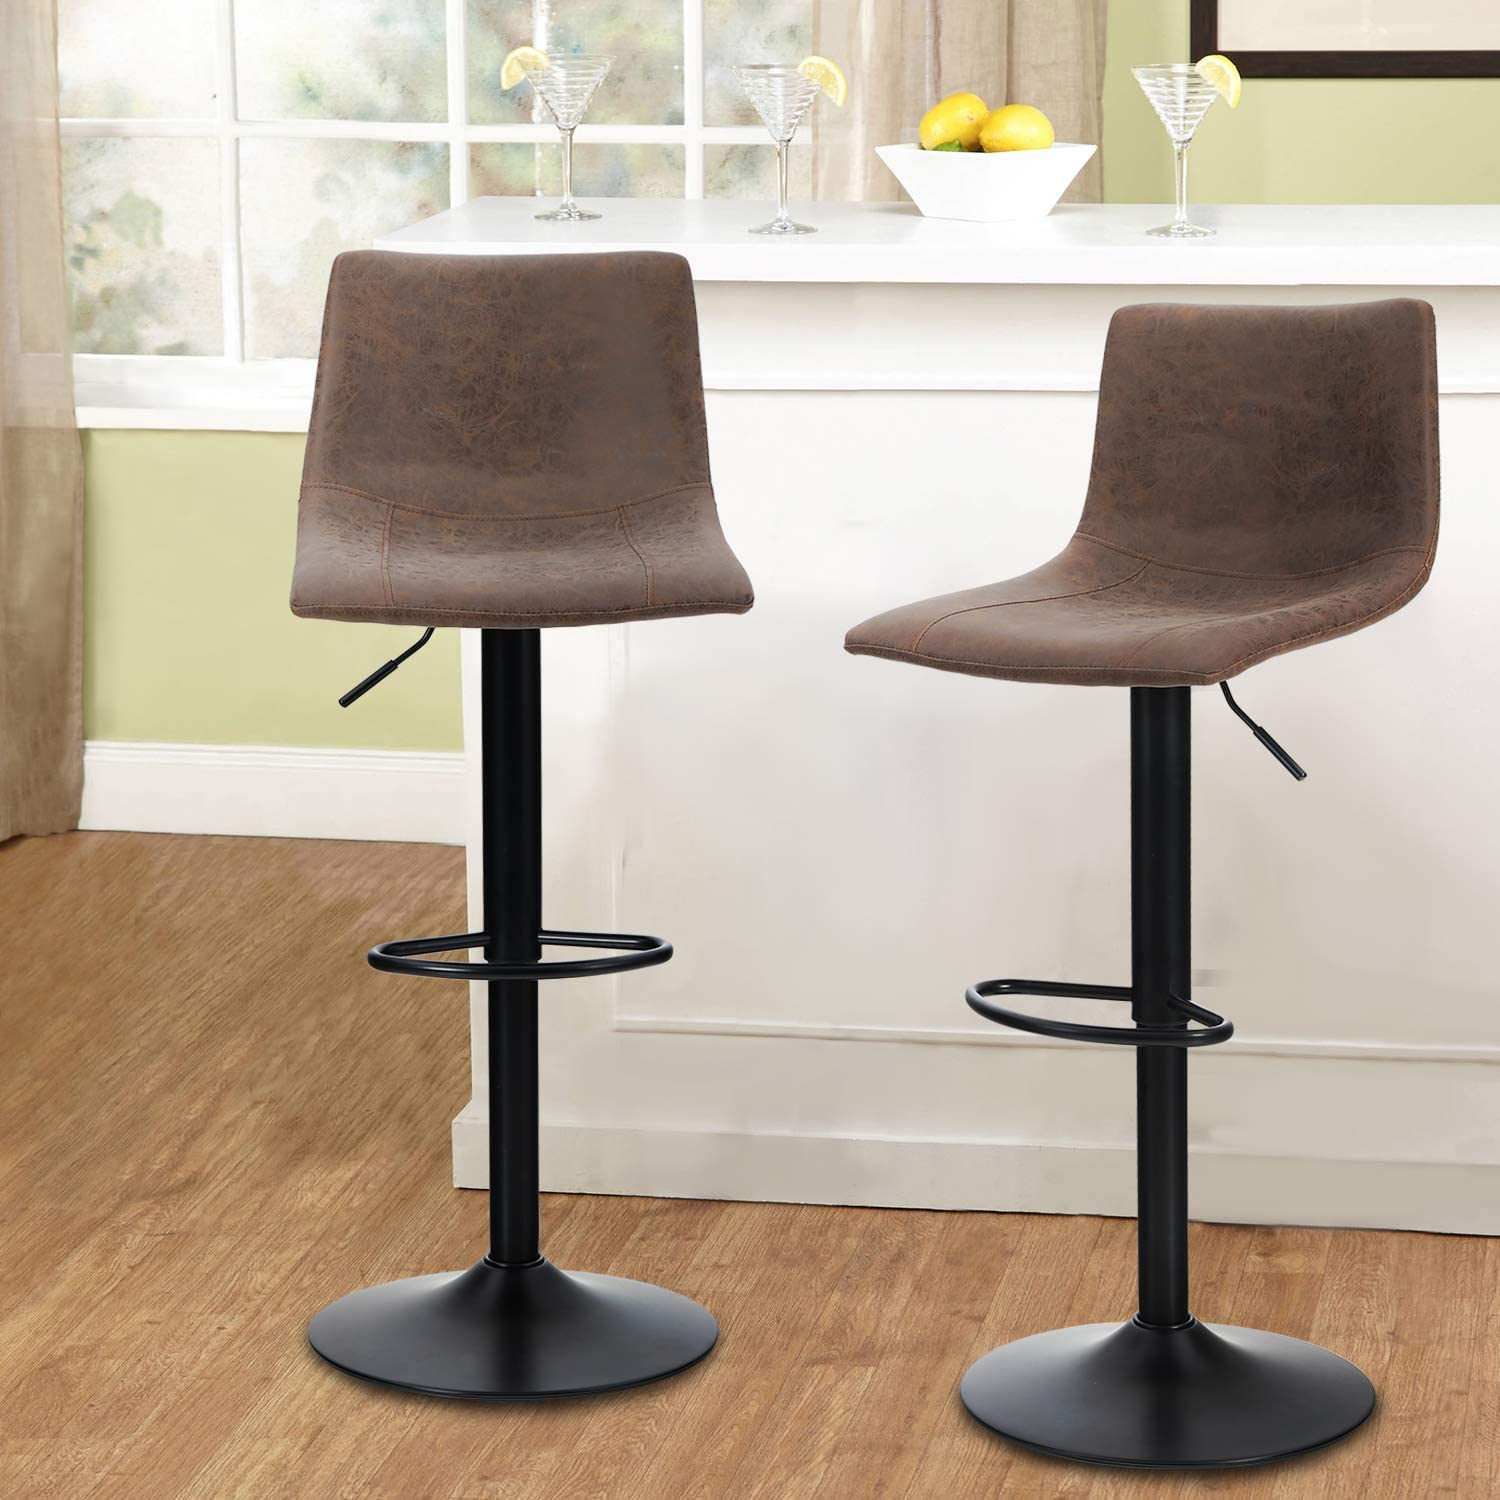 MAISON ARTS Swivel Bar Stools Set of 9 for Kitchen Counter Adjustable  Counter Height Bar Chairs with Back Tall Barstools PU Leather Kitchen  Island ...